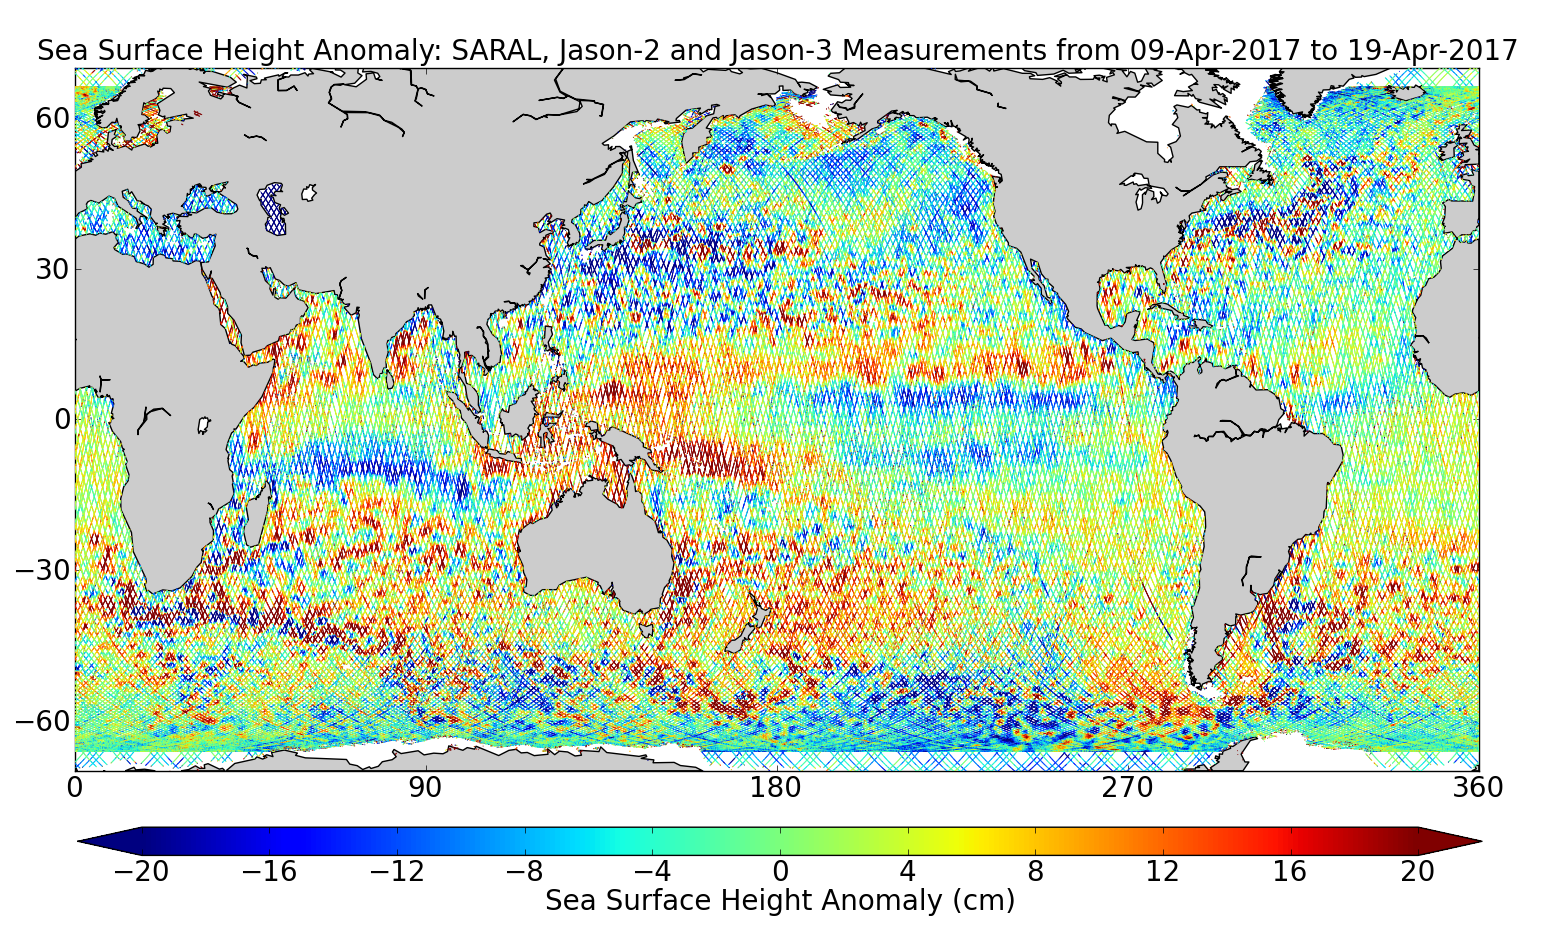 Sea Surface Height Anomaly: SARAL, Jason-2 and Jason-3 Measurements from 09-Apr-2017 to 19-Apr-2017